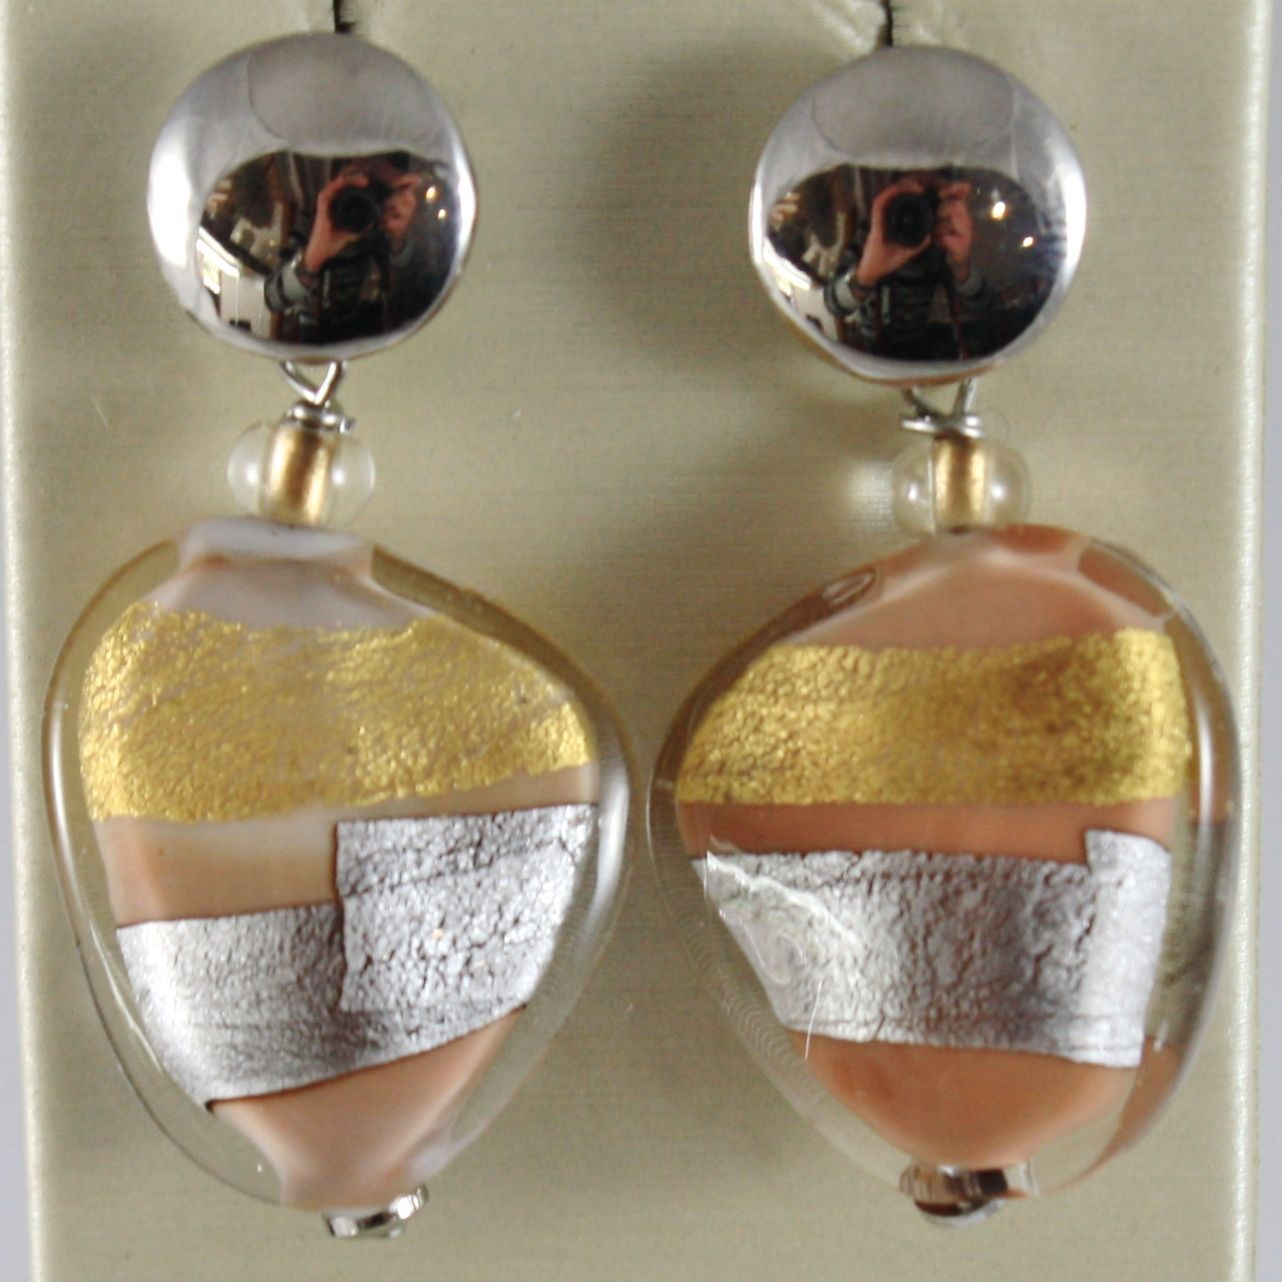 ANTICA MURRINA VENEZIA STRIPED PENDANT EARRINGS SAND, SILVER AND GOLD FLAT DROPS